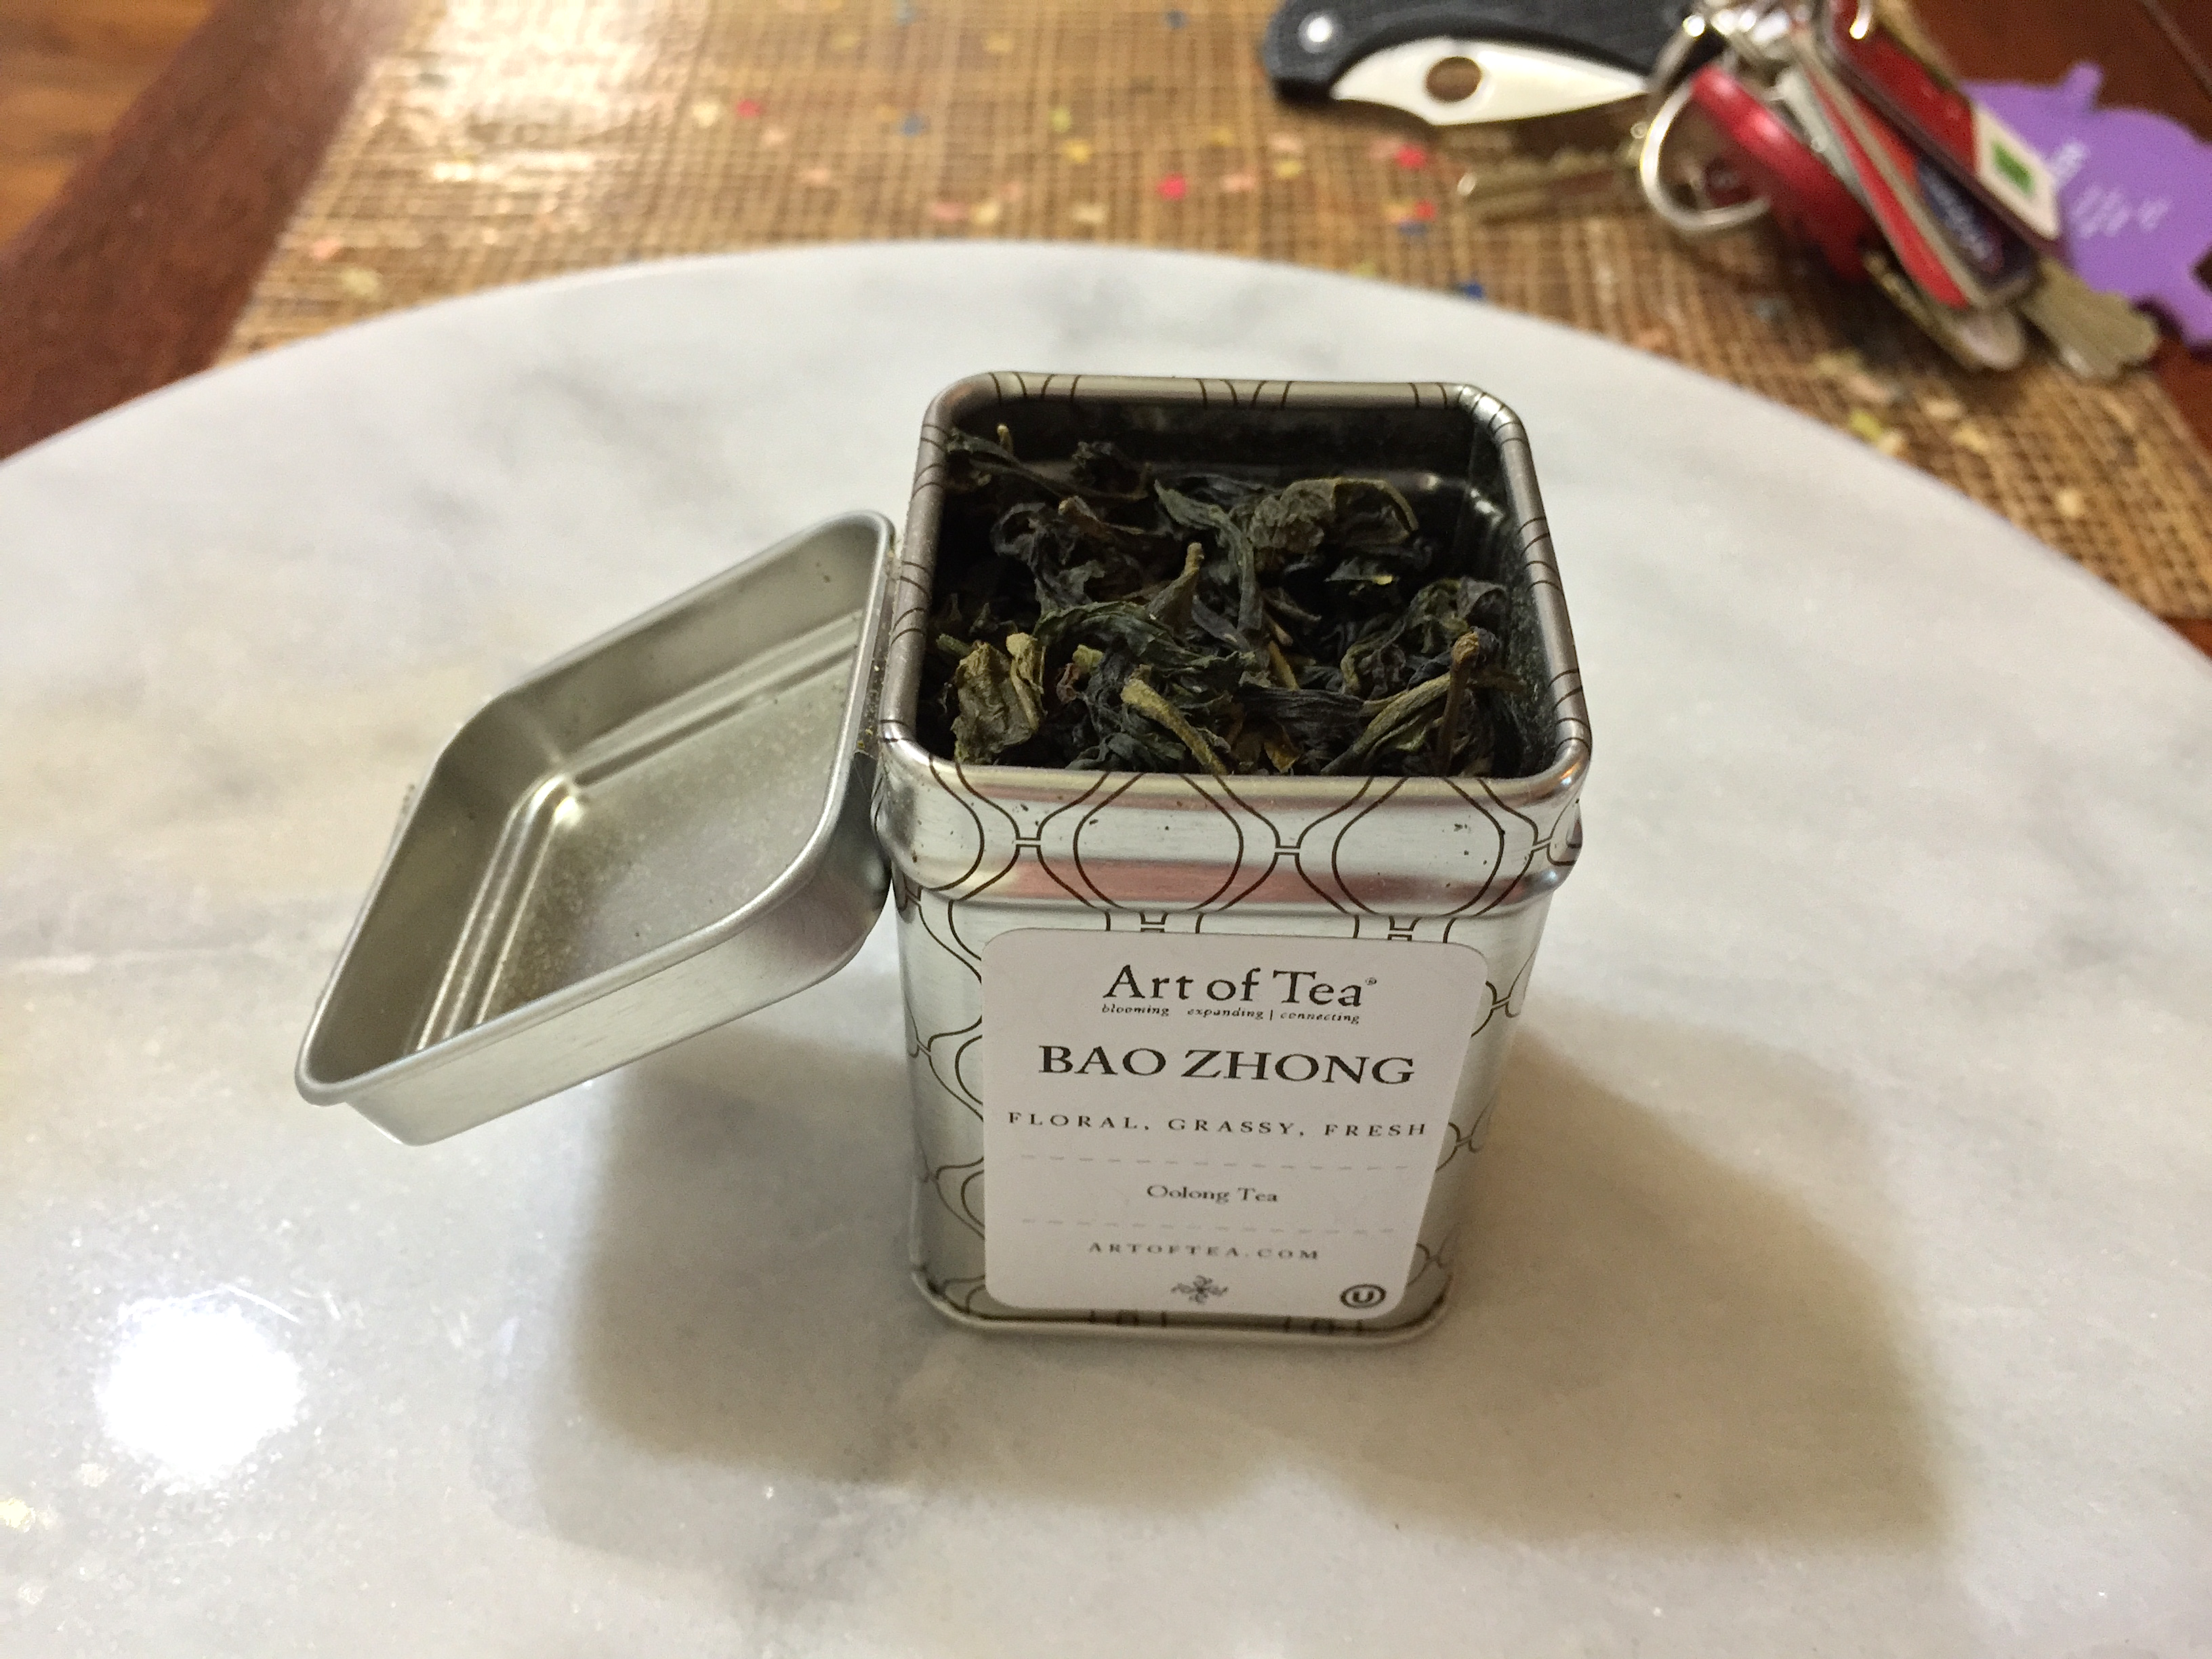 Bao Zhong High Grade (Art of Tea): canister open by Jocilyn Mors is licensed under a Creative Commons Attribution-ShareAlike 4.0 International License.